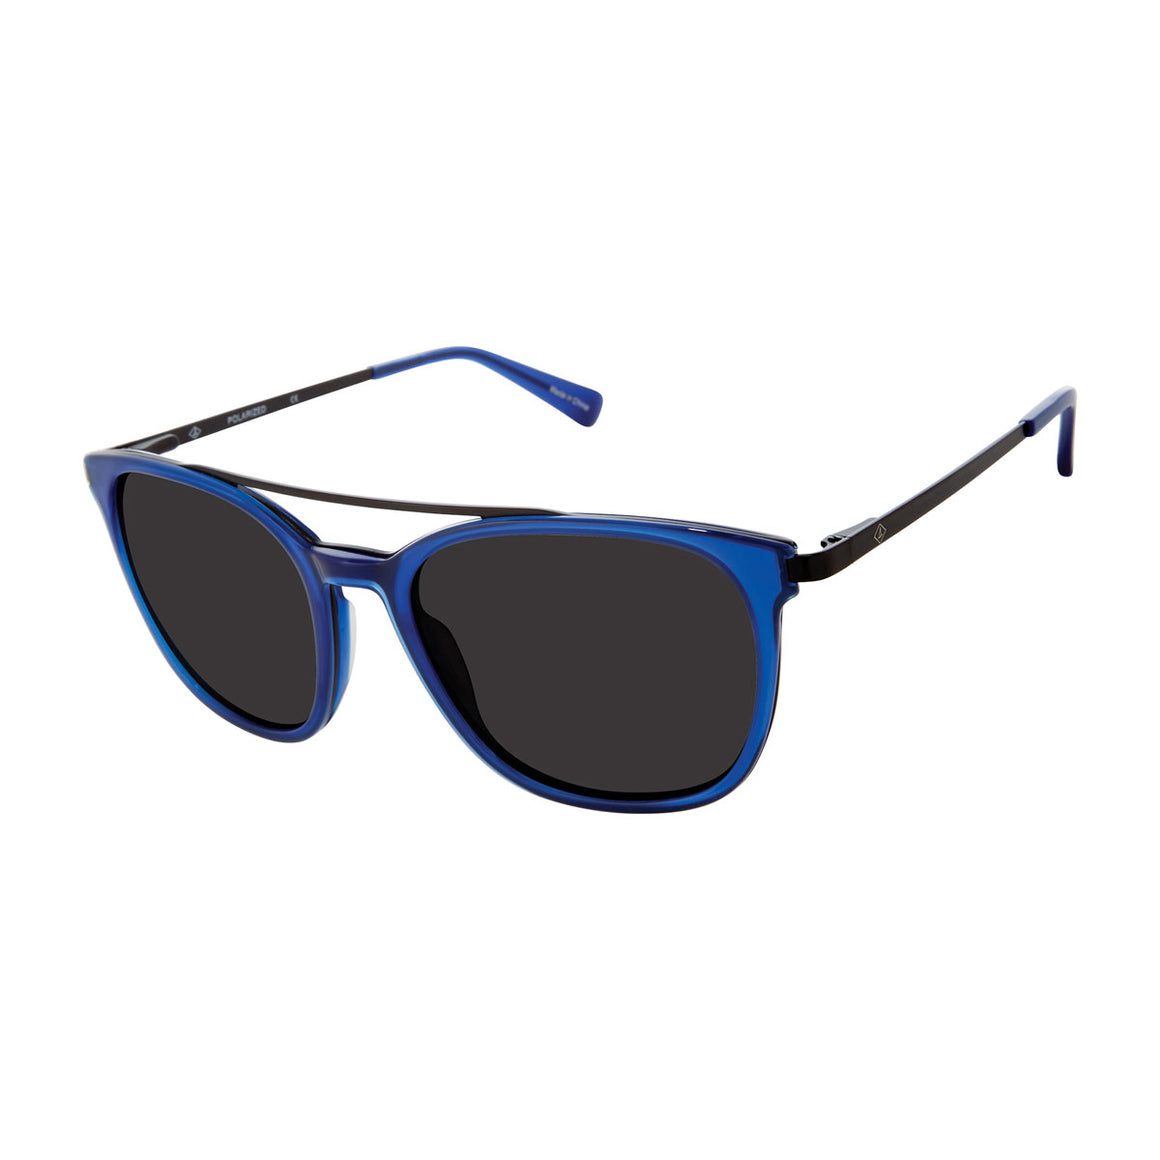 Leeward - Blue - Men's